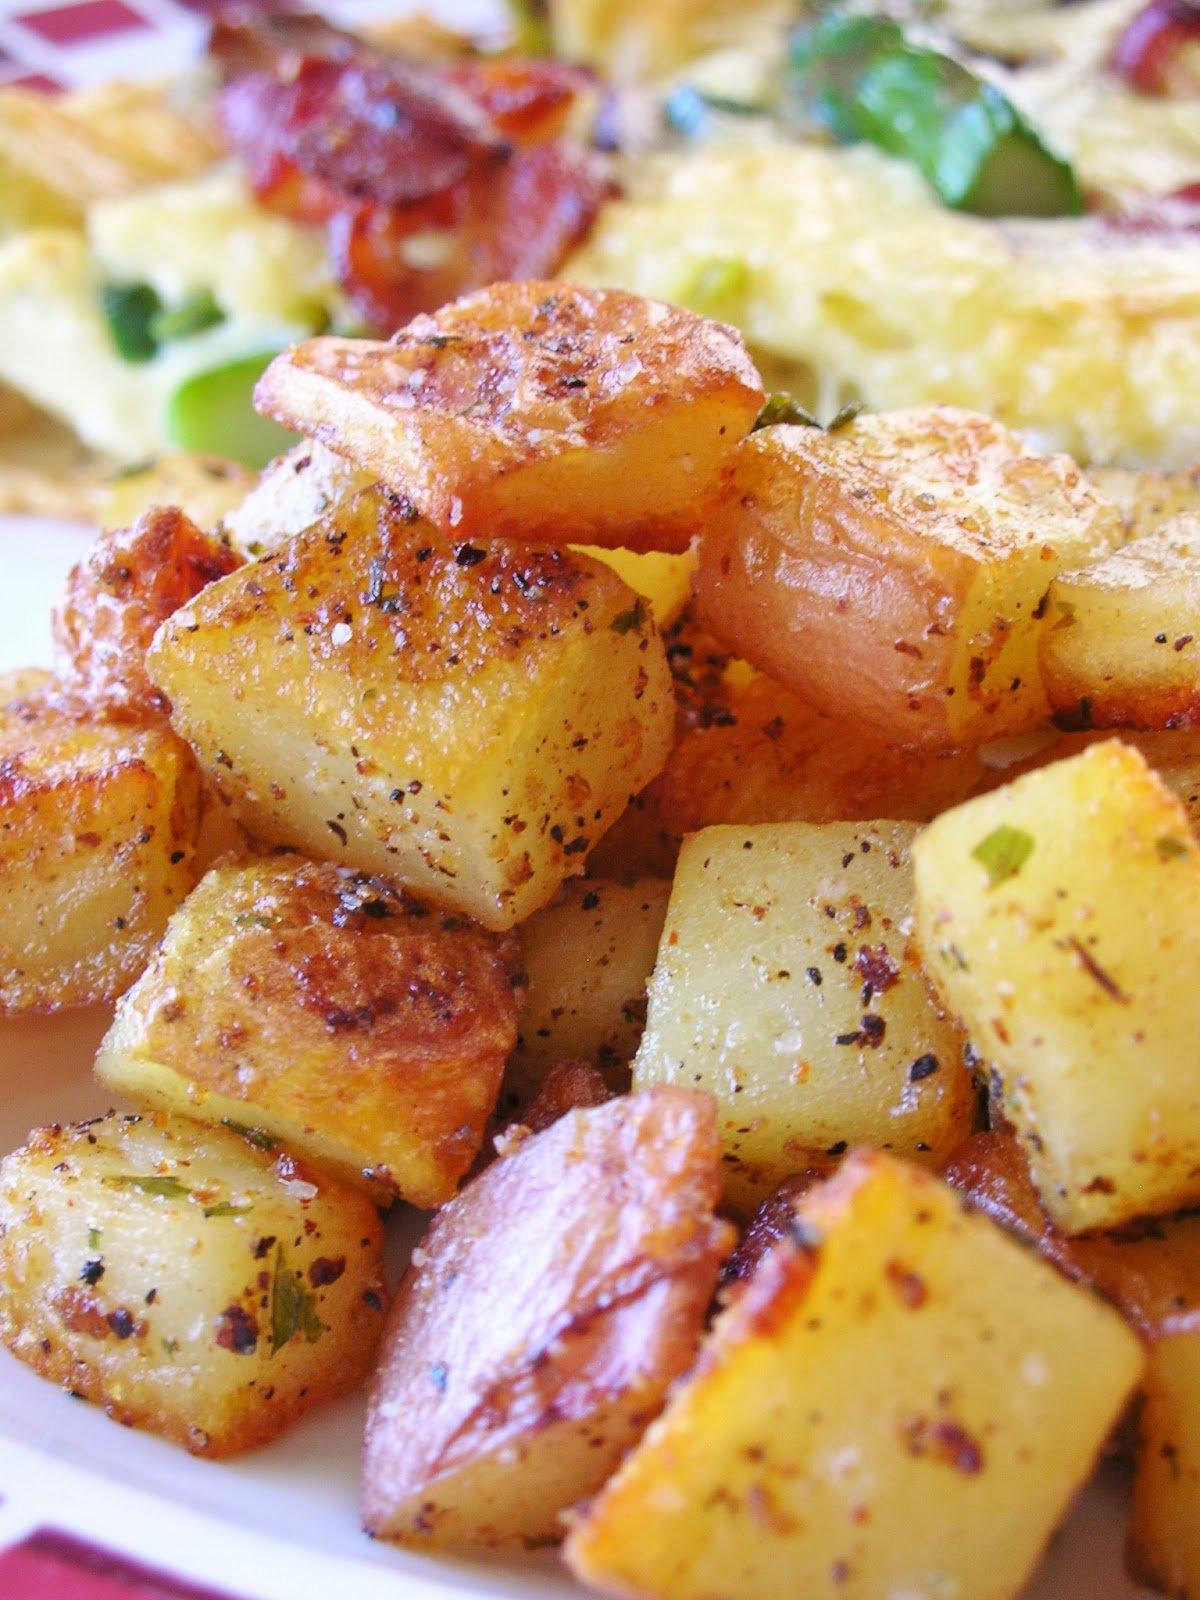 served this with delicious spicy roasted potatoes and a fried egg!